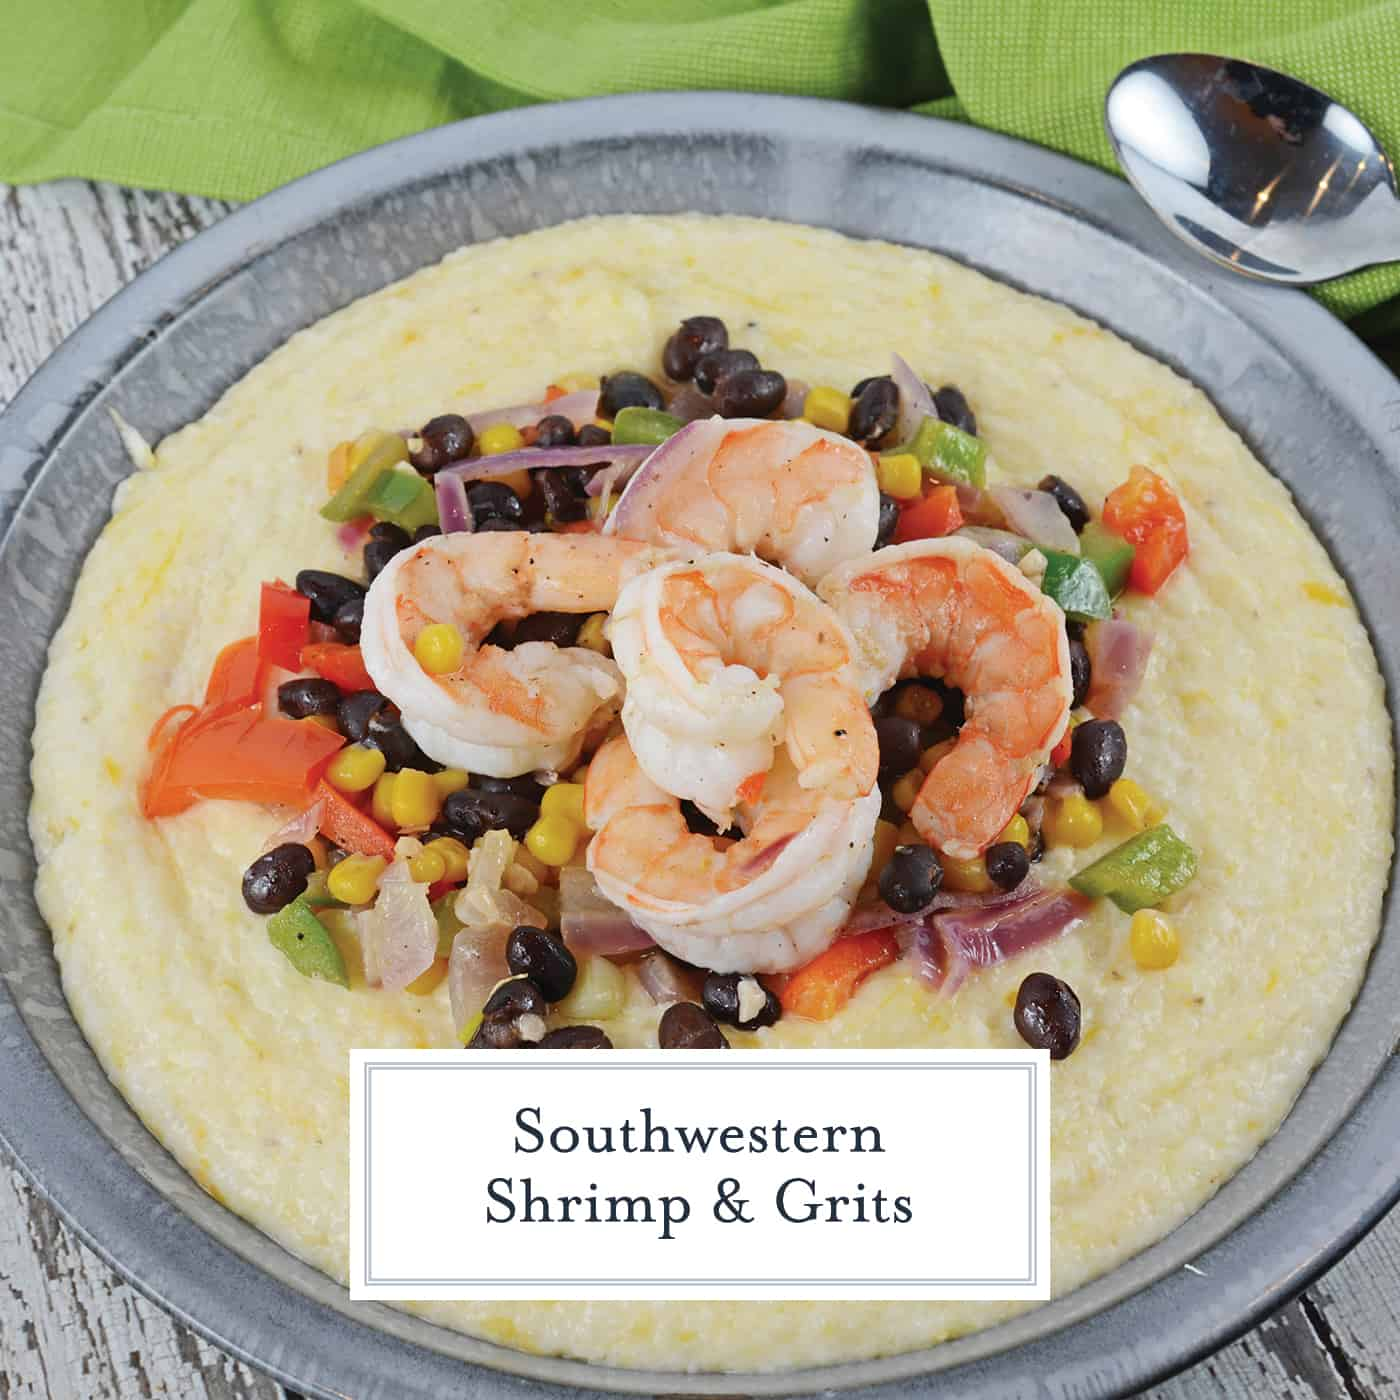 This Southwestern Shrimp and Grits recipe is a new take on an old classic! It combines Texas Caviar with Creamy Cheddar Grits and shrimp! #shrimpandgritsrecipe #cheesyshrimpandgrits www.savoryexperiments.com